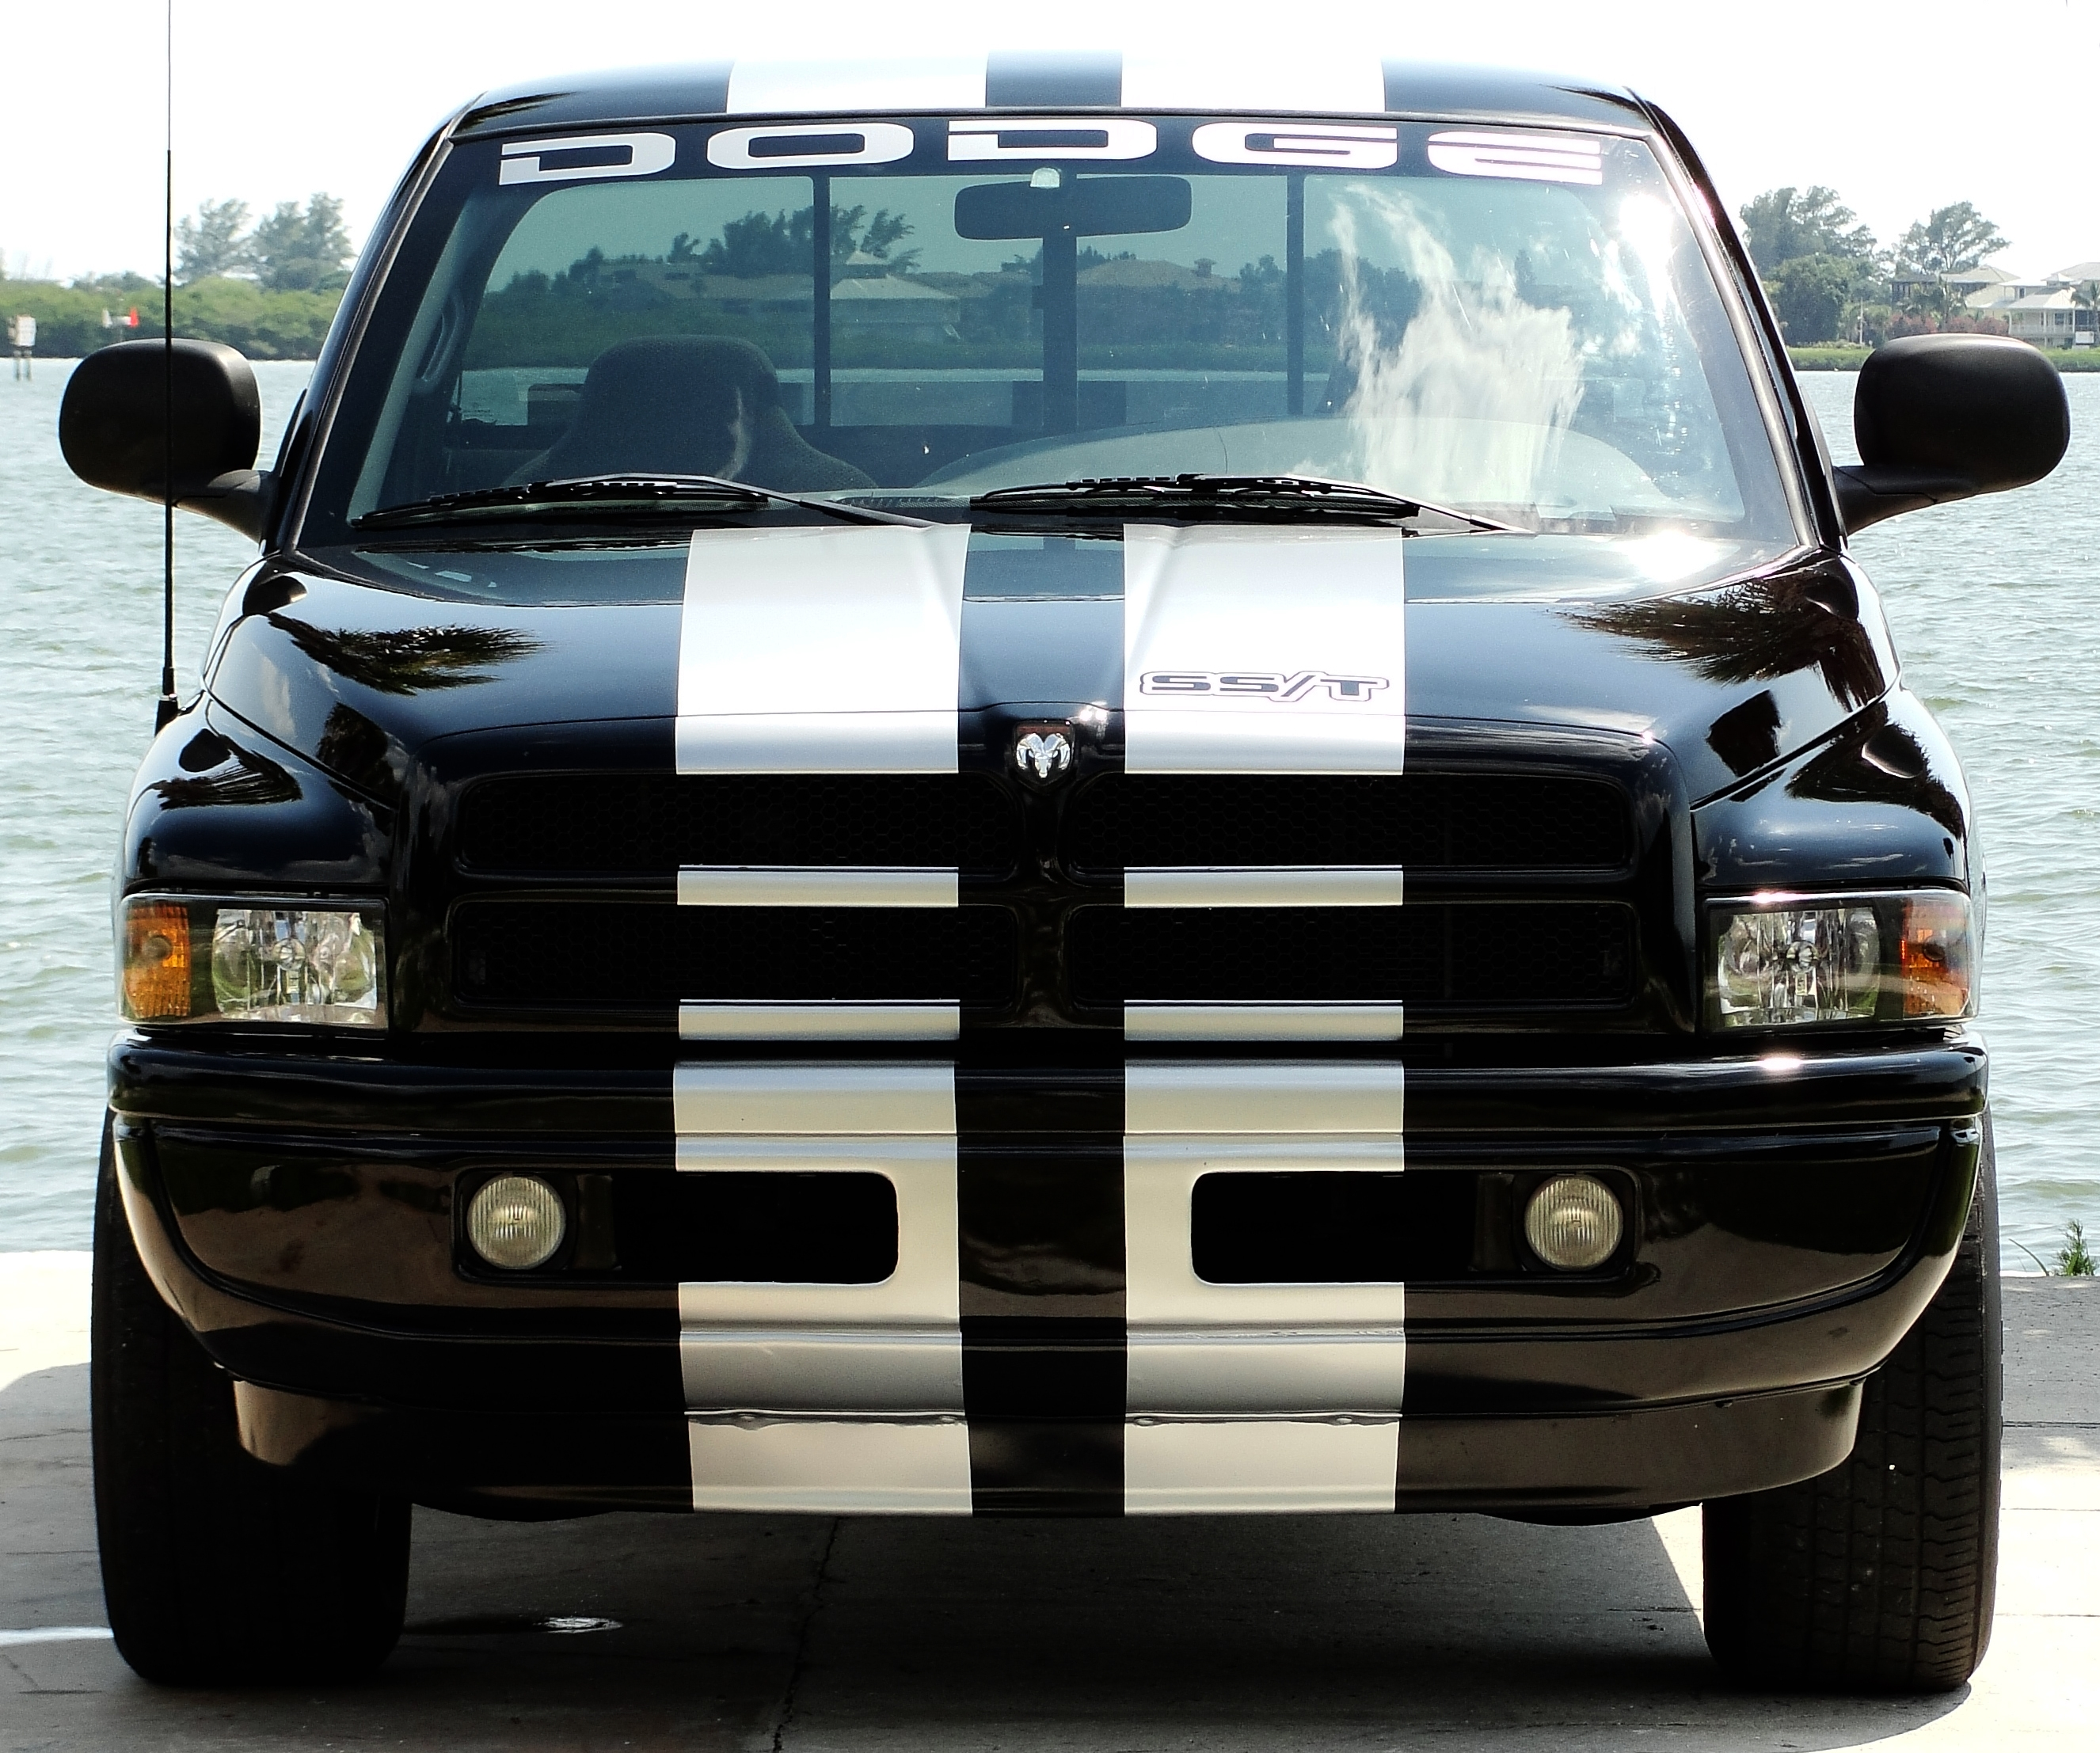 Strang3majik 1998 Dodge Ram 1500 Regular Cab Specs, Photos